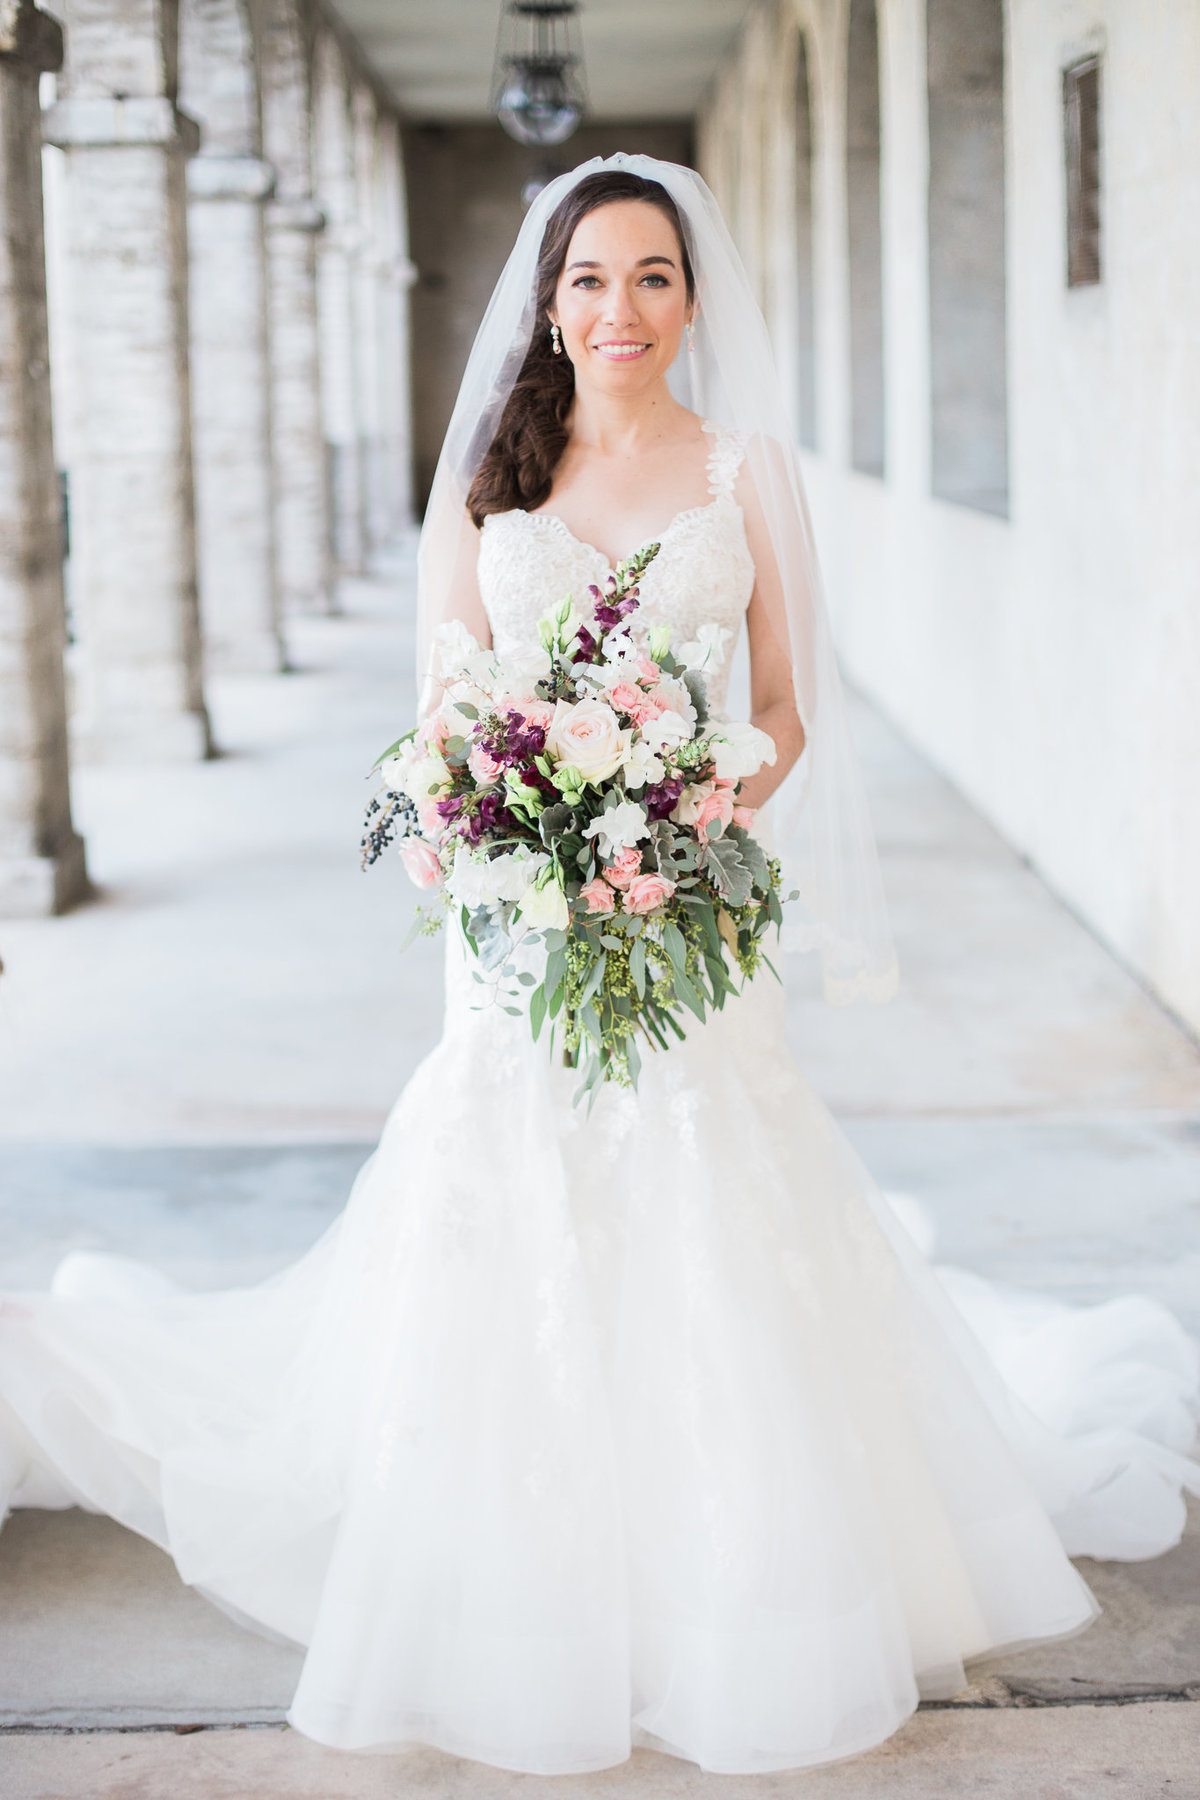 Bride portrait at Lightner Museum in St Augustine